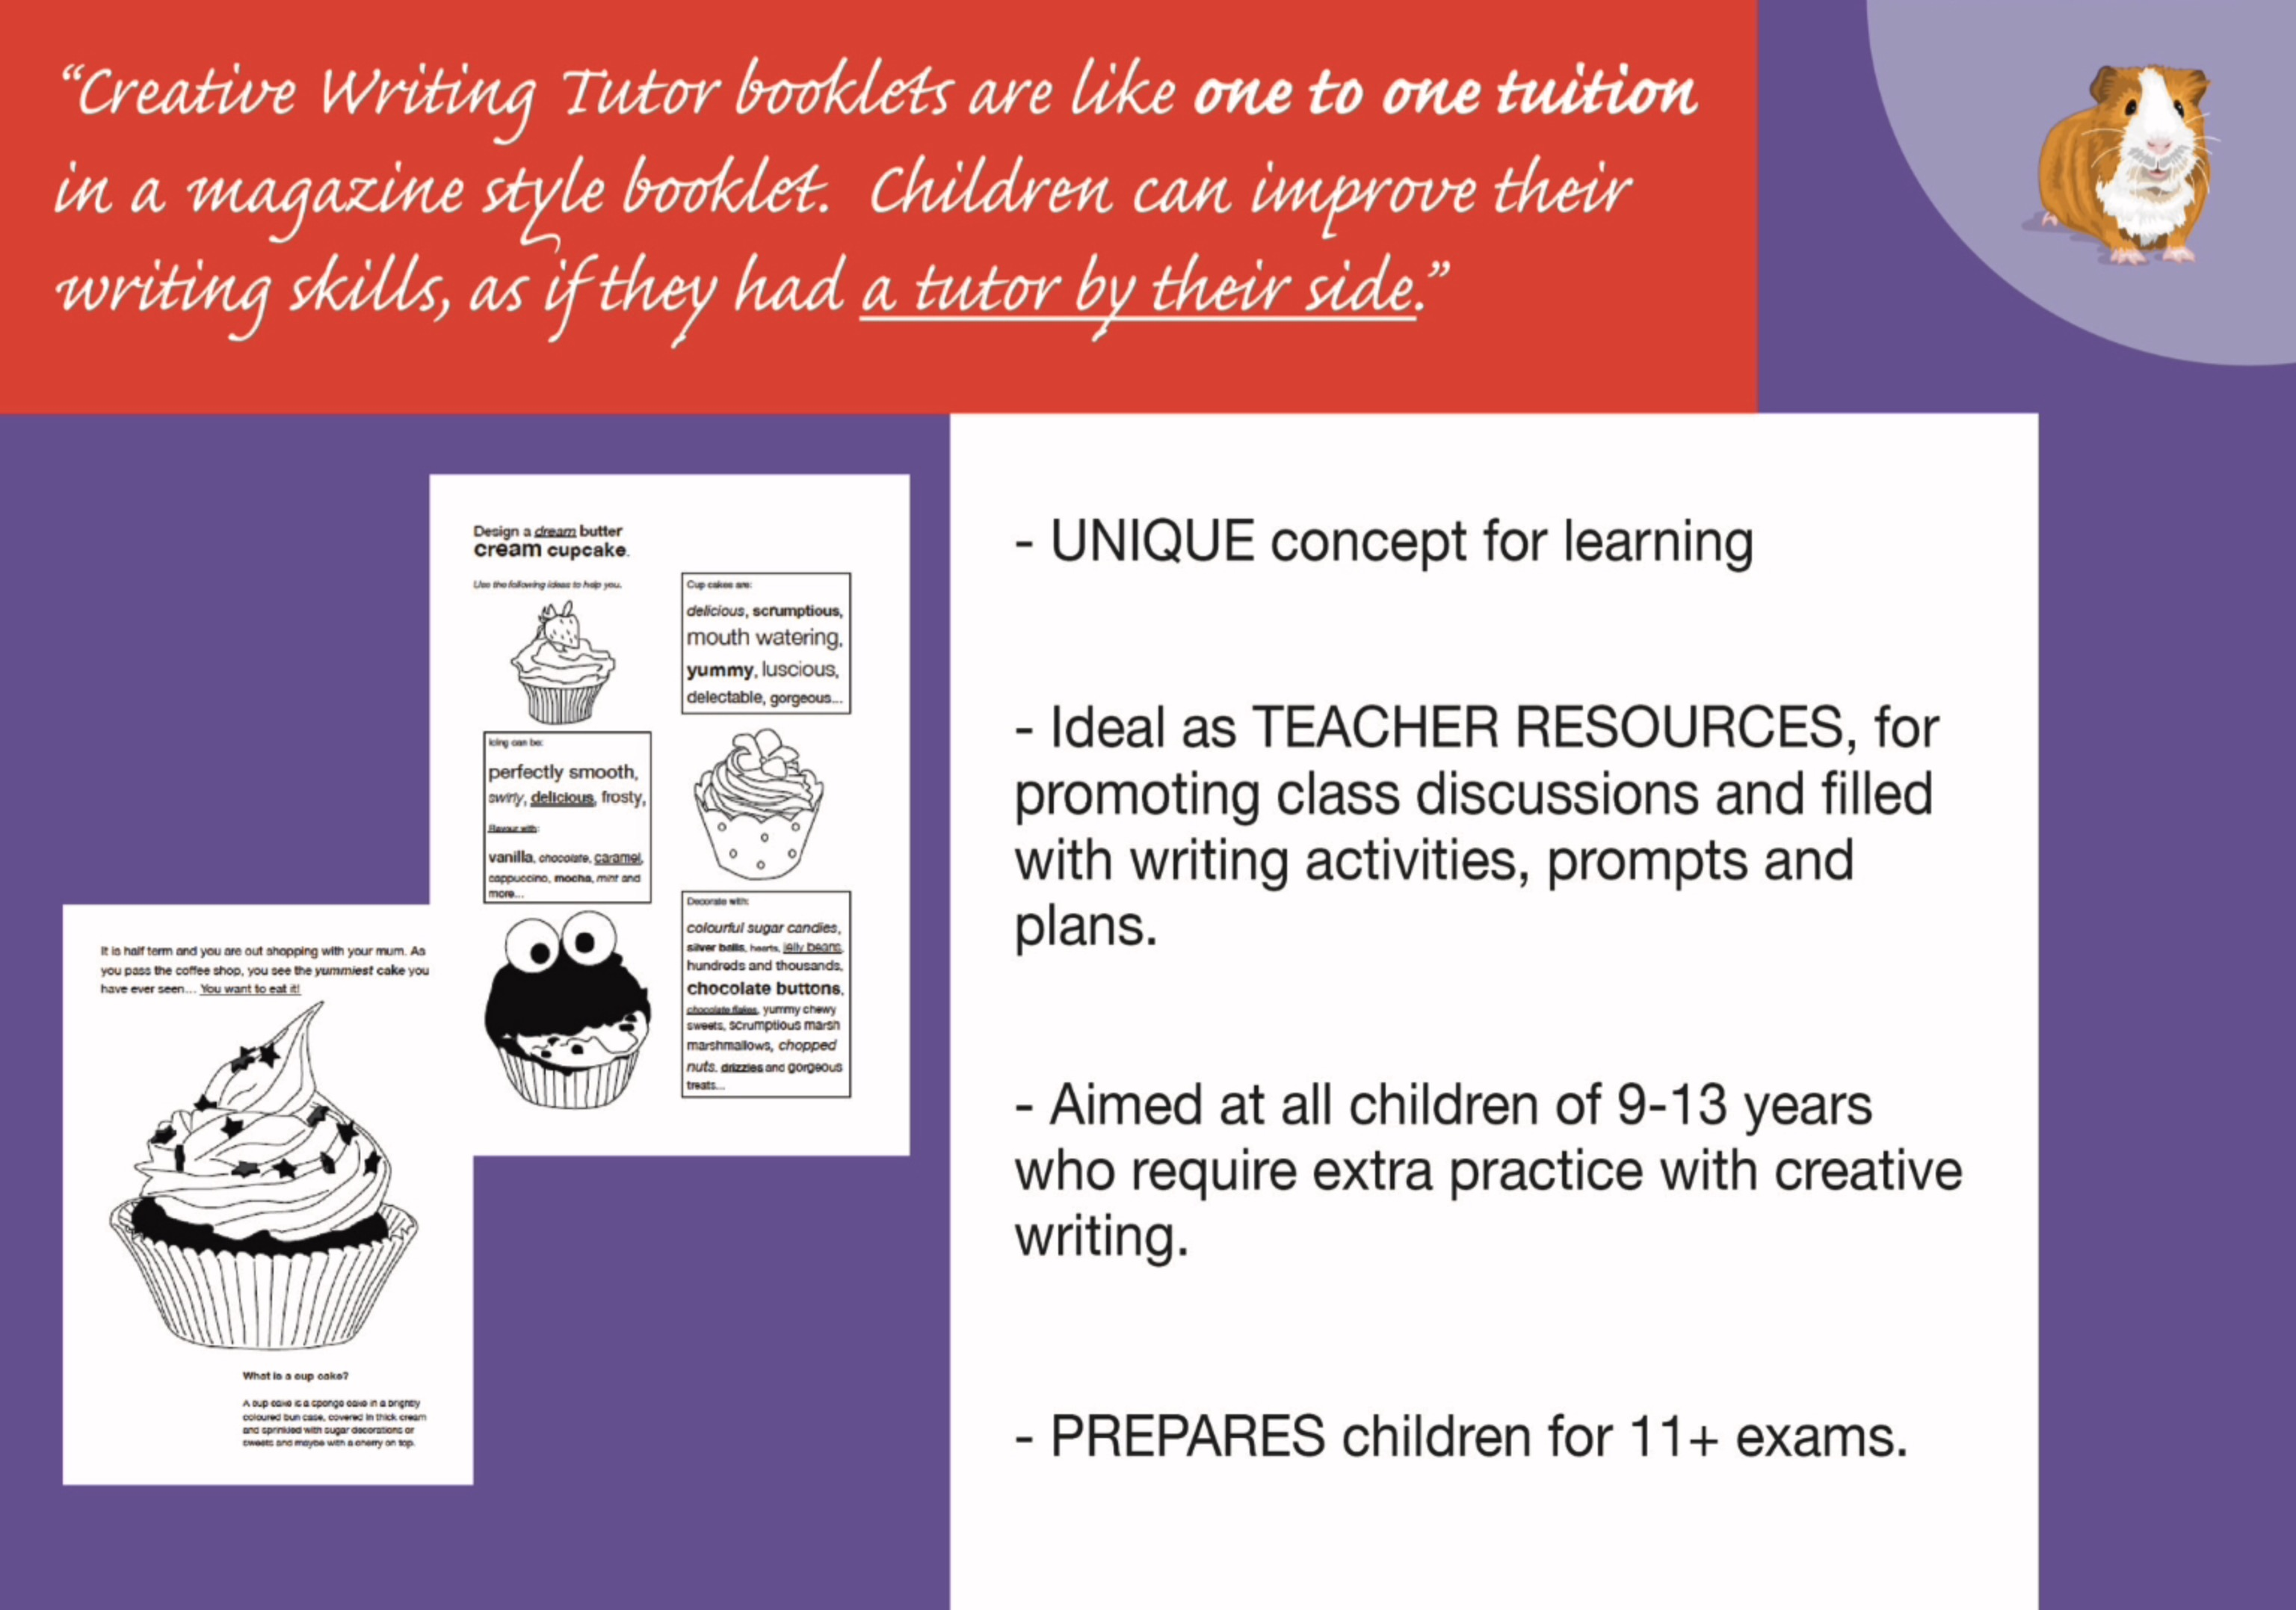 Highly Recommended: Learn Comprehension Skills 'At The Stroke Of Midnight' 9-12 years